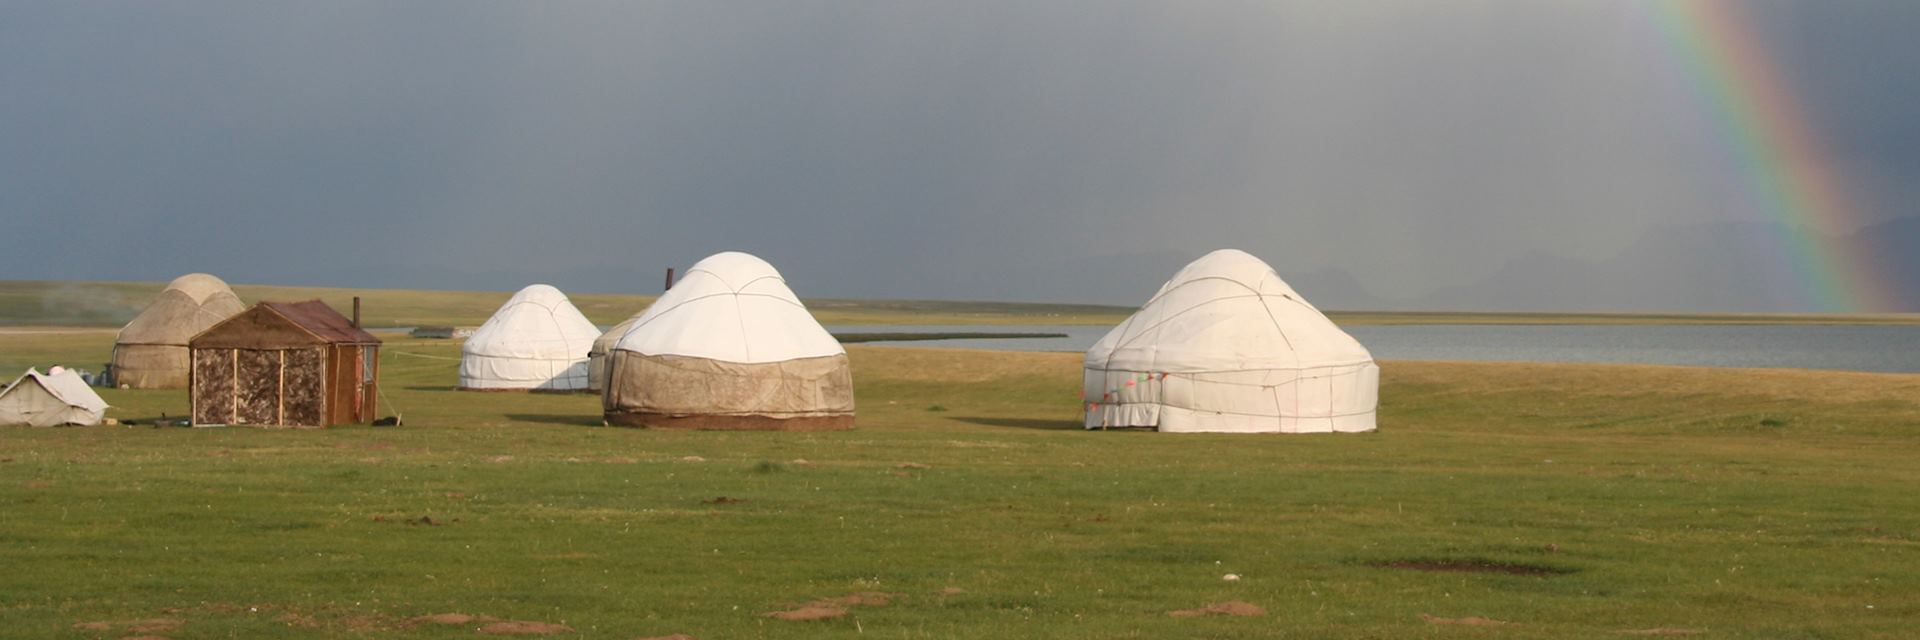 Yurt camp, Lake Issyk Kul